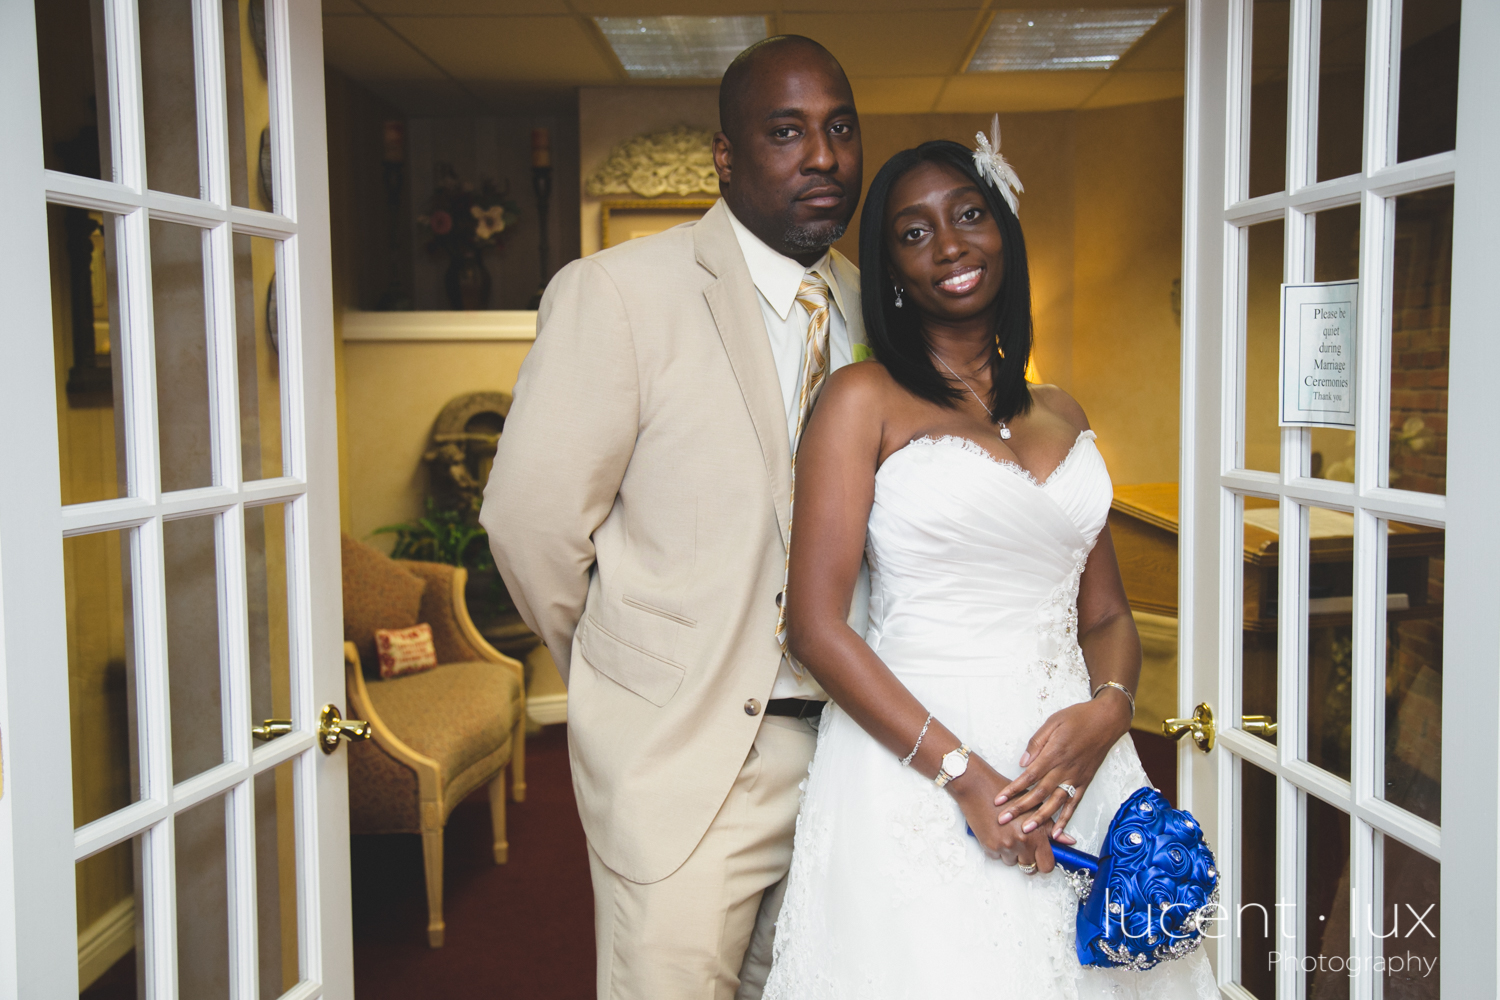 Harford_County_Courthouse_Bel_Air_Maryland_Wedding_Photographer_Maryland_Wedding_Photography-125.jpg